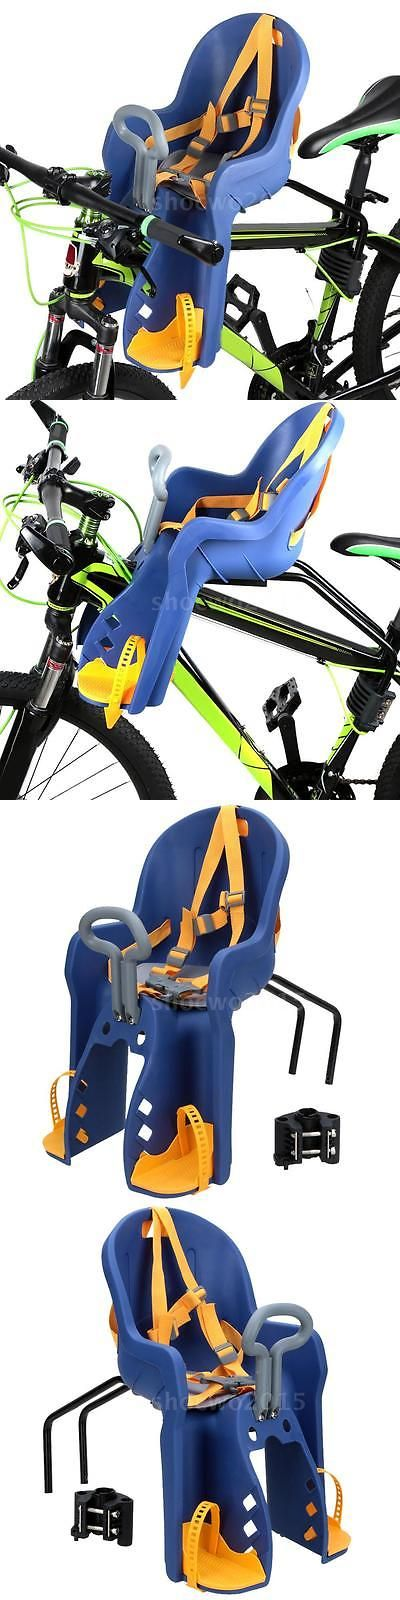 Child Seats 56808: Bicycle Kids Child Front Baby Seat Bike Carrier Usa Standard With Handrail F4o5 BUY IT NOW ONLY: $73.98